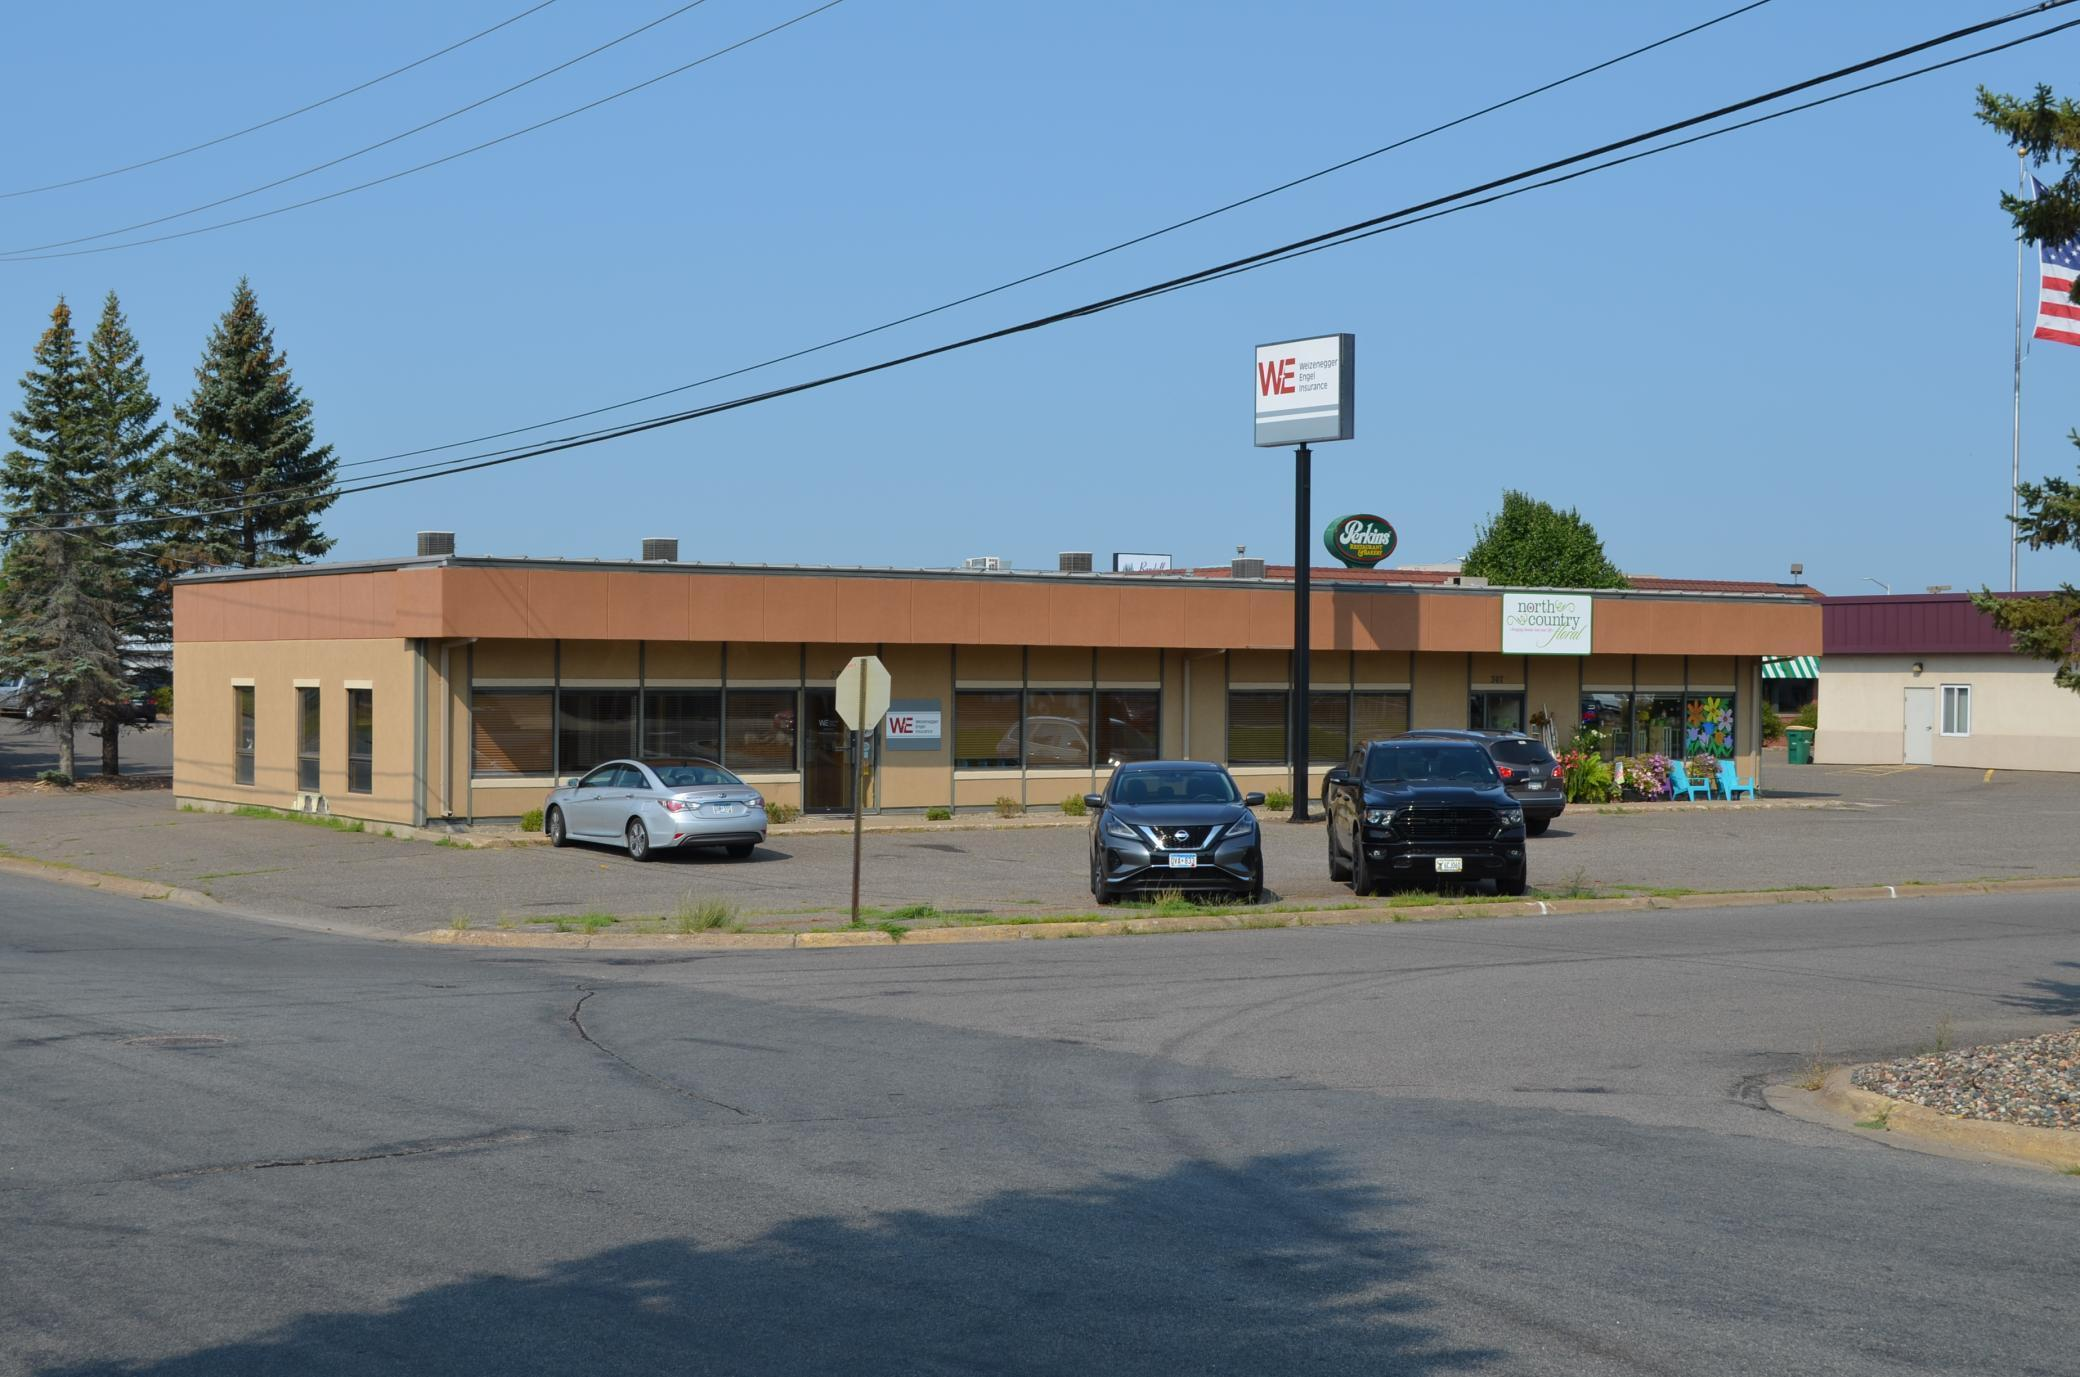 Excellent opportunity to move or expand into turn-key office space located just off the busy Hwy 210 / Washington Street corridor in Brainerd. Purchase or lease the 2,550 sq. ft. of available space neighboring the 1,450 sq. ft. occupied by North County Floral. Enjoy easy access and high traffic counts at the corner of 6th Street NW and Charles Street, across from McDonalds.